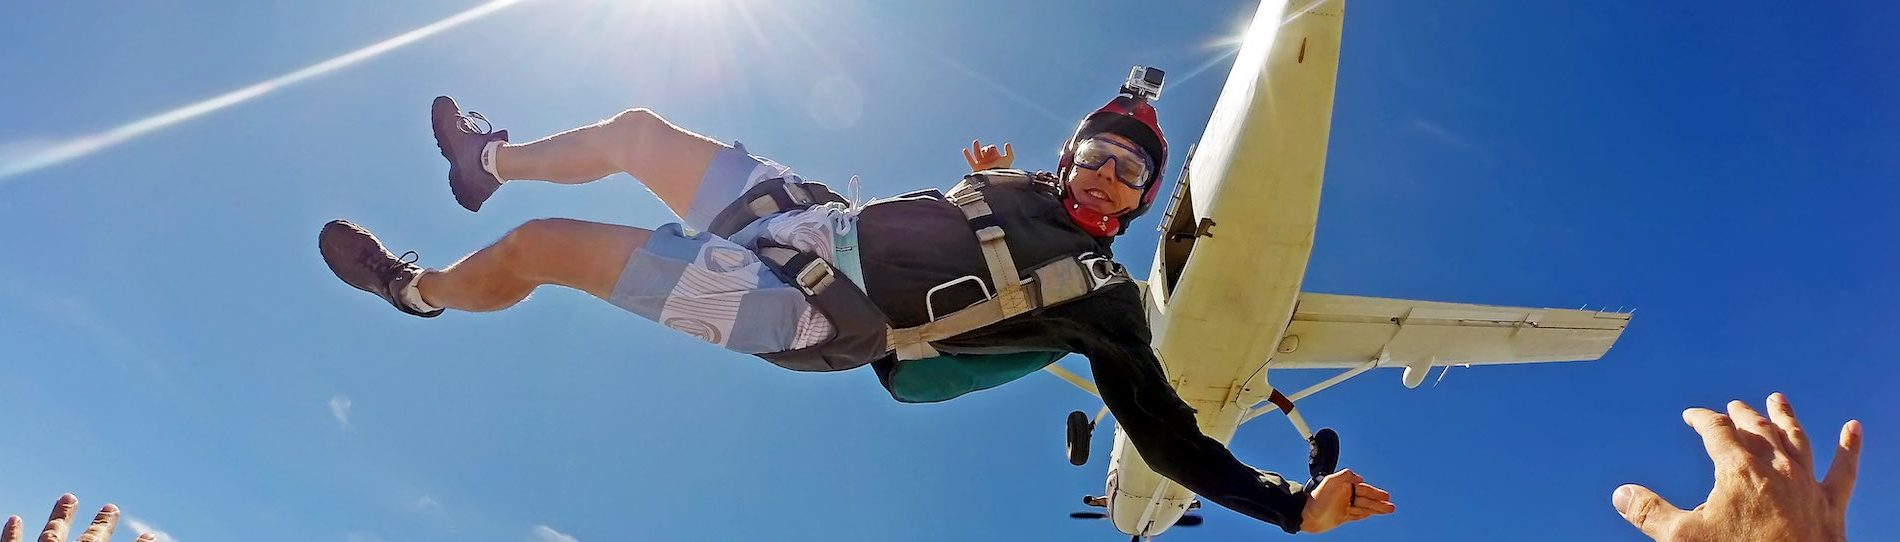 buck skydiving with go-pro camera